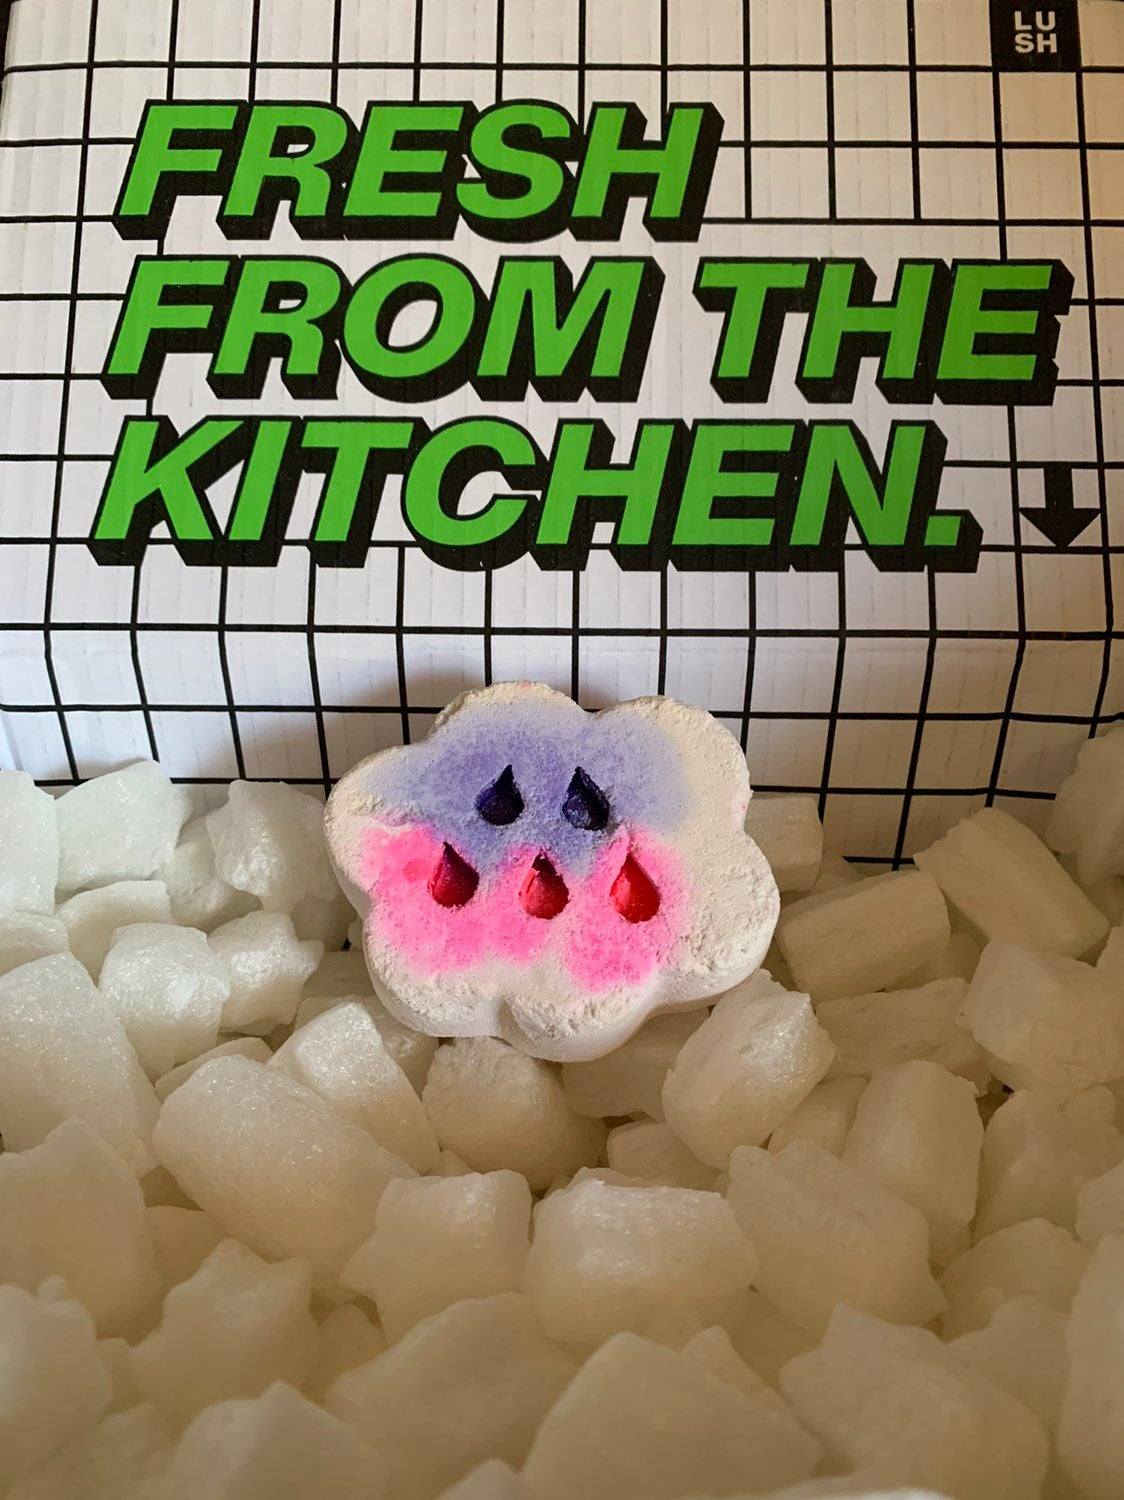 April Showers bath bomb - Lush Kitchen